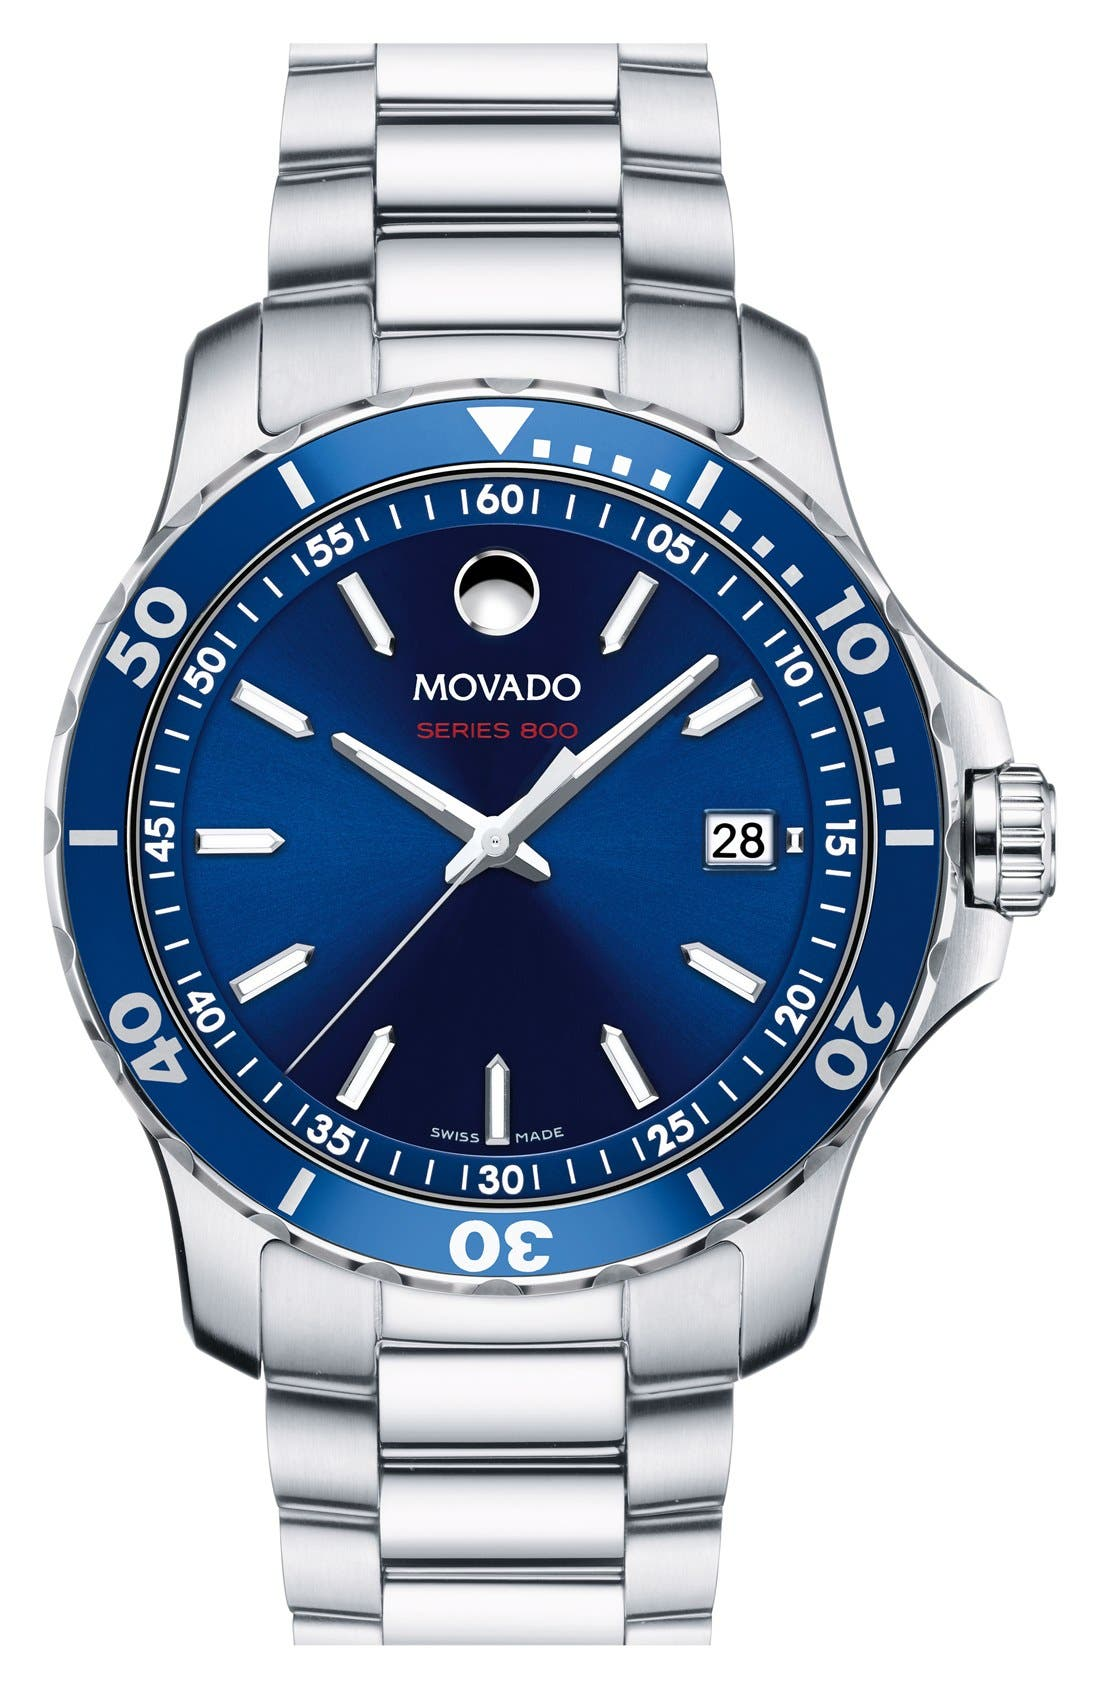 Main Image - Movado 'Series 800' Bracelet Watch, 40mm